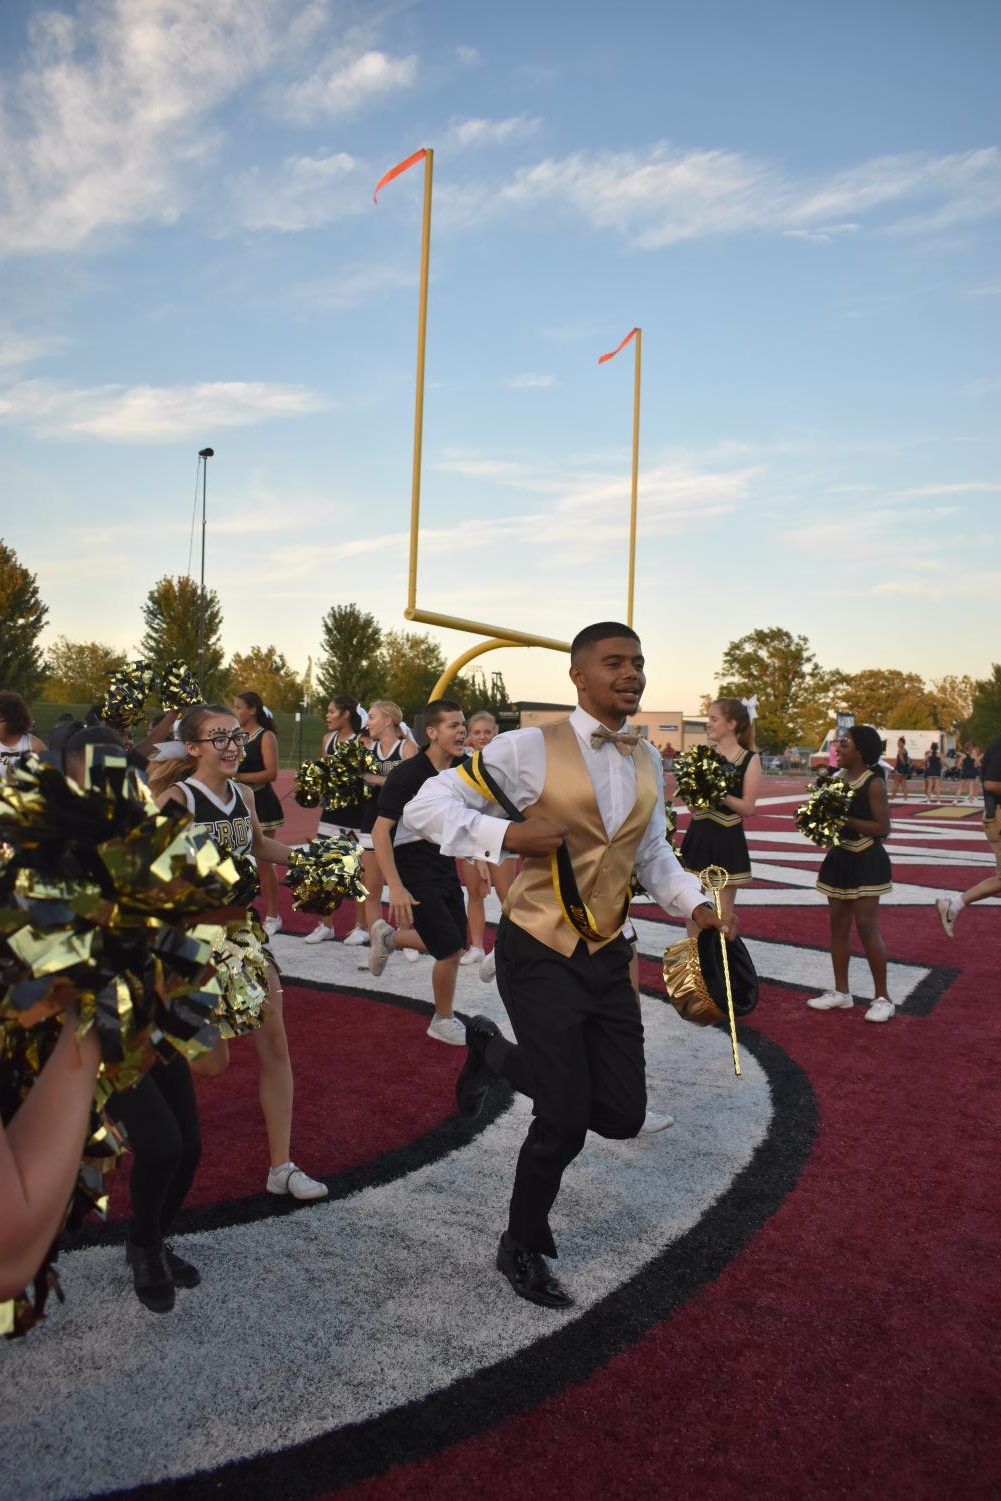 Darren+Canty+runs+out+onto+the+field+behind+the+football+players+after+being+crowned+homecoming+king.